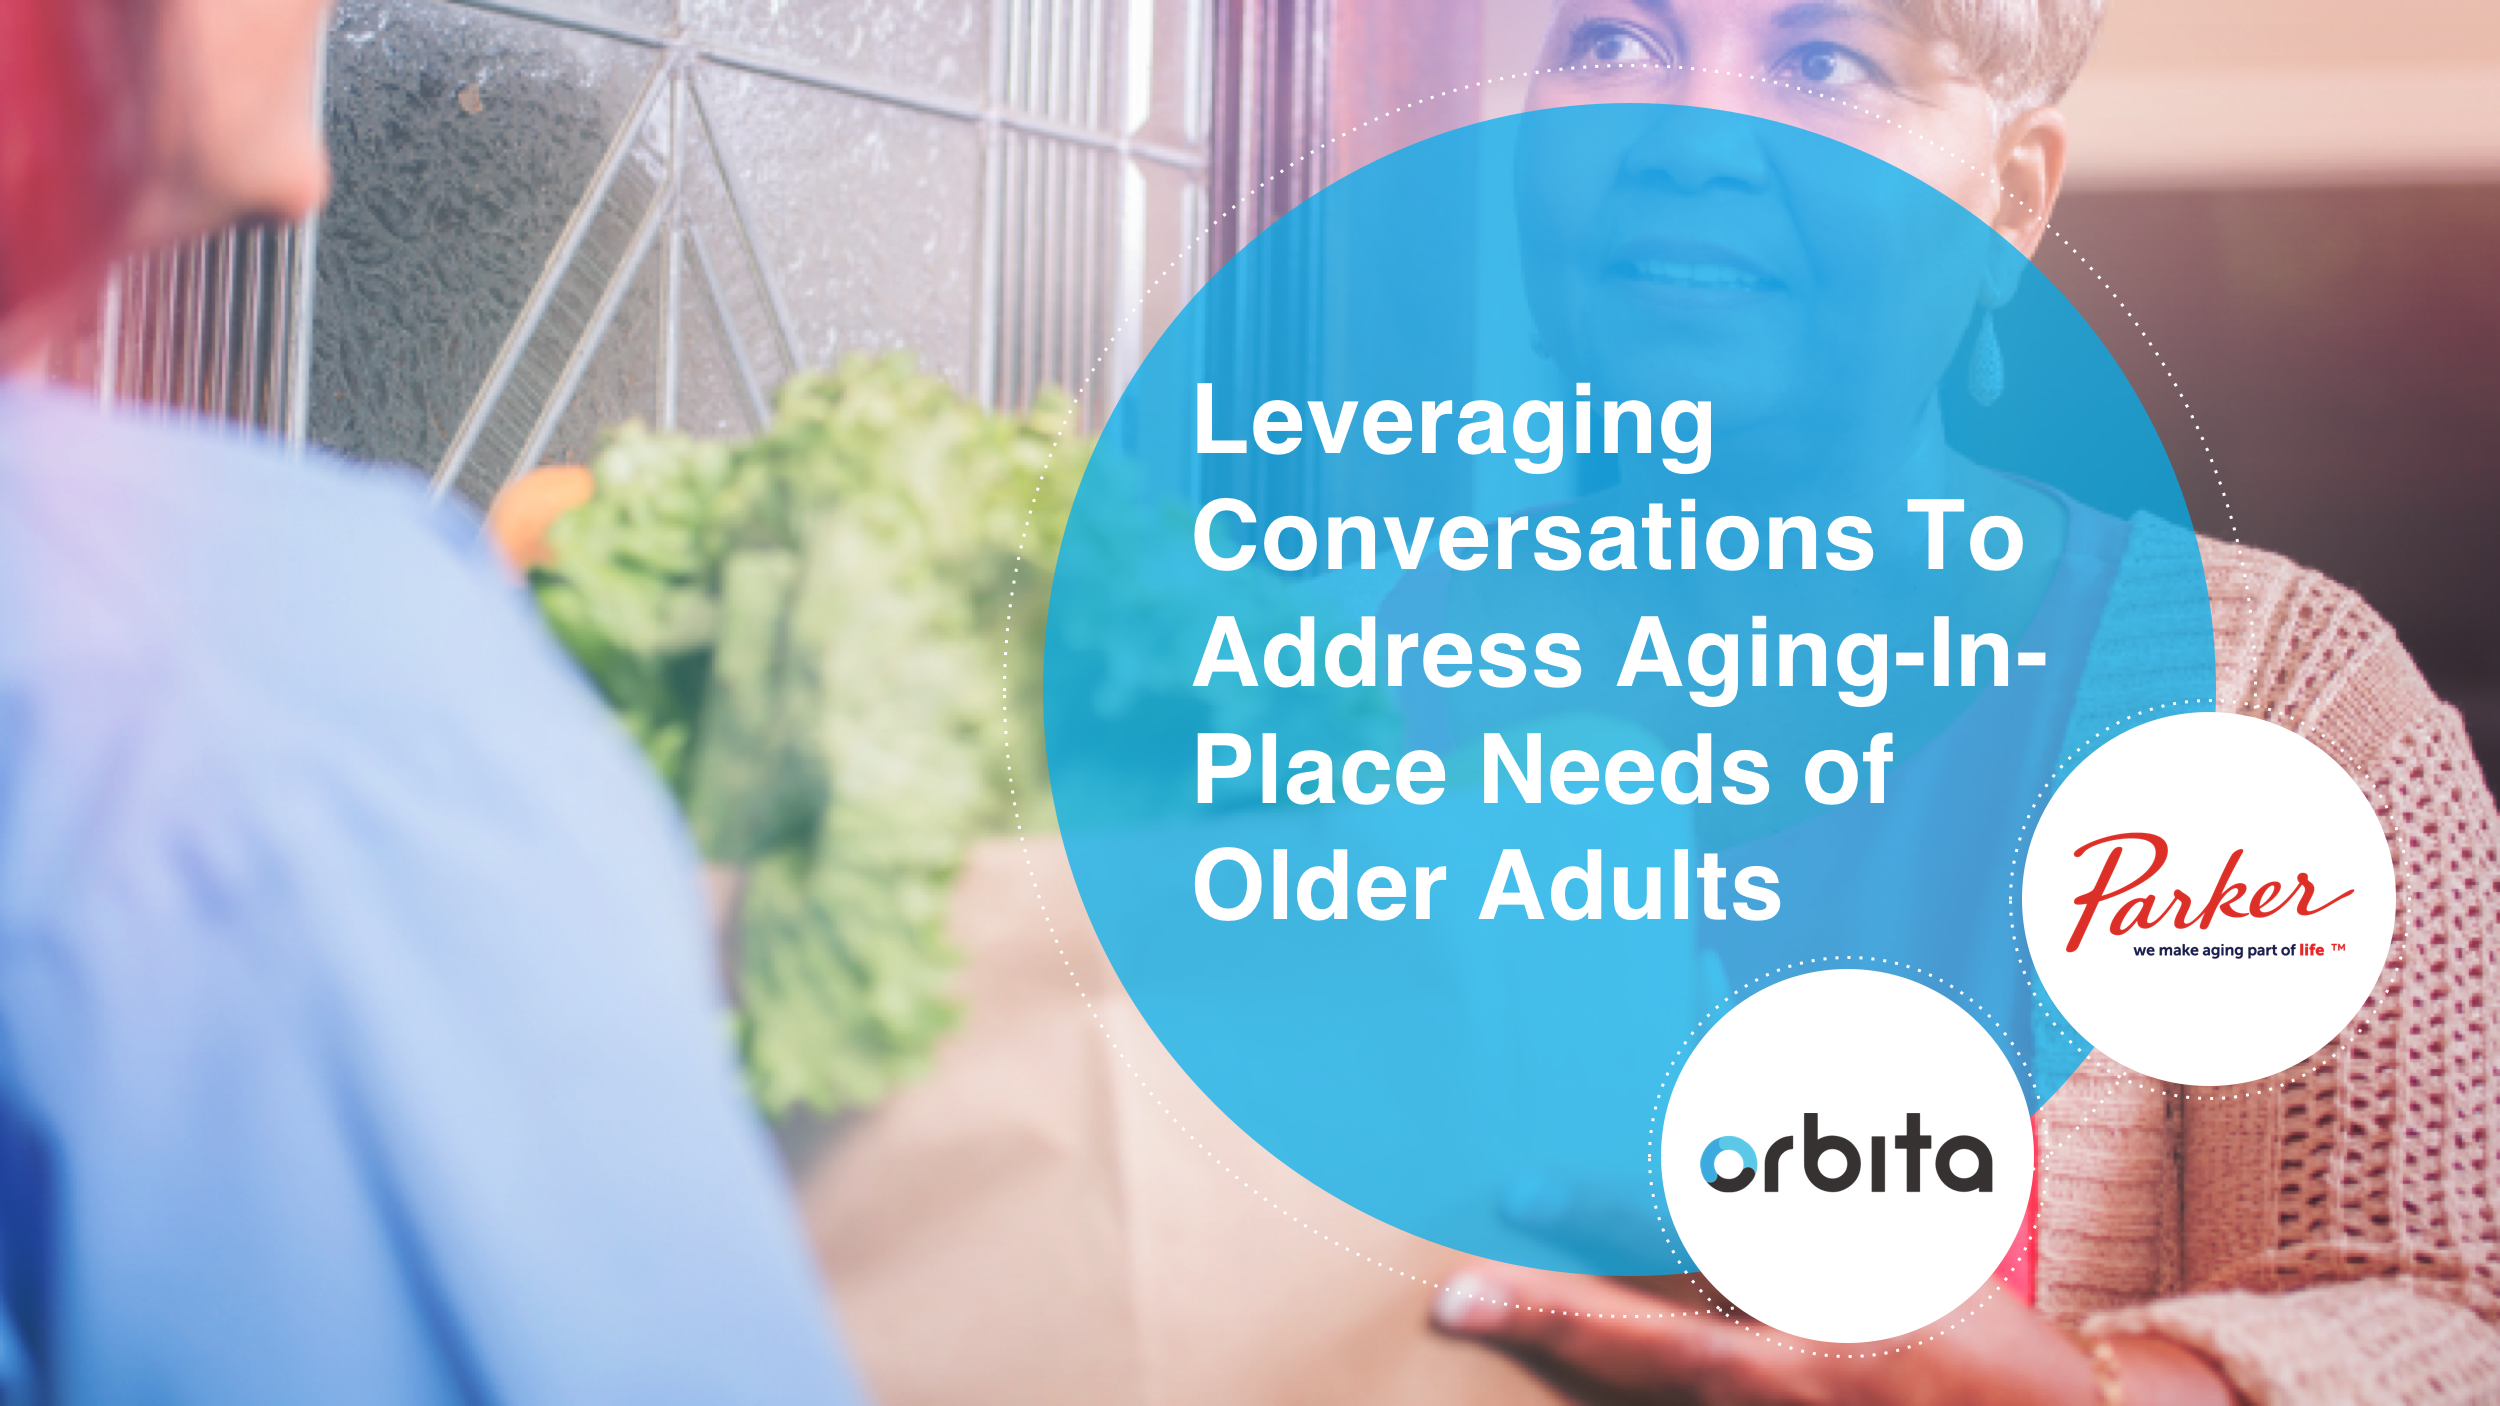 Leveraging Conversational Experiences to Address Aging-in-Place Needs of Older Adults